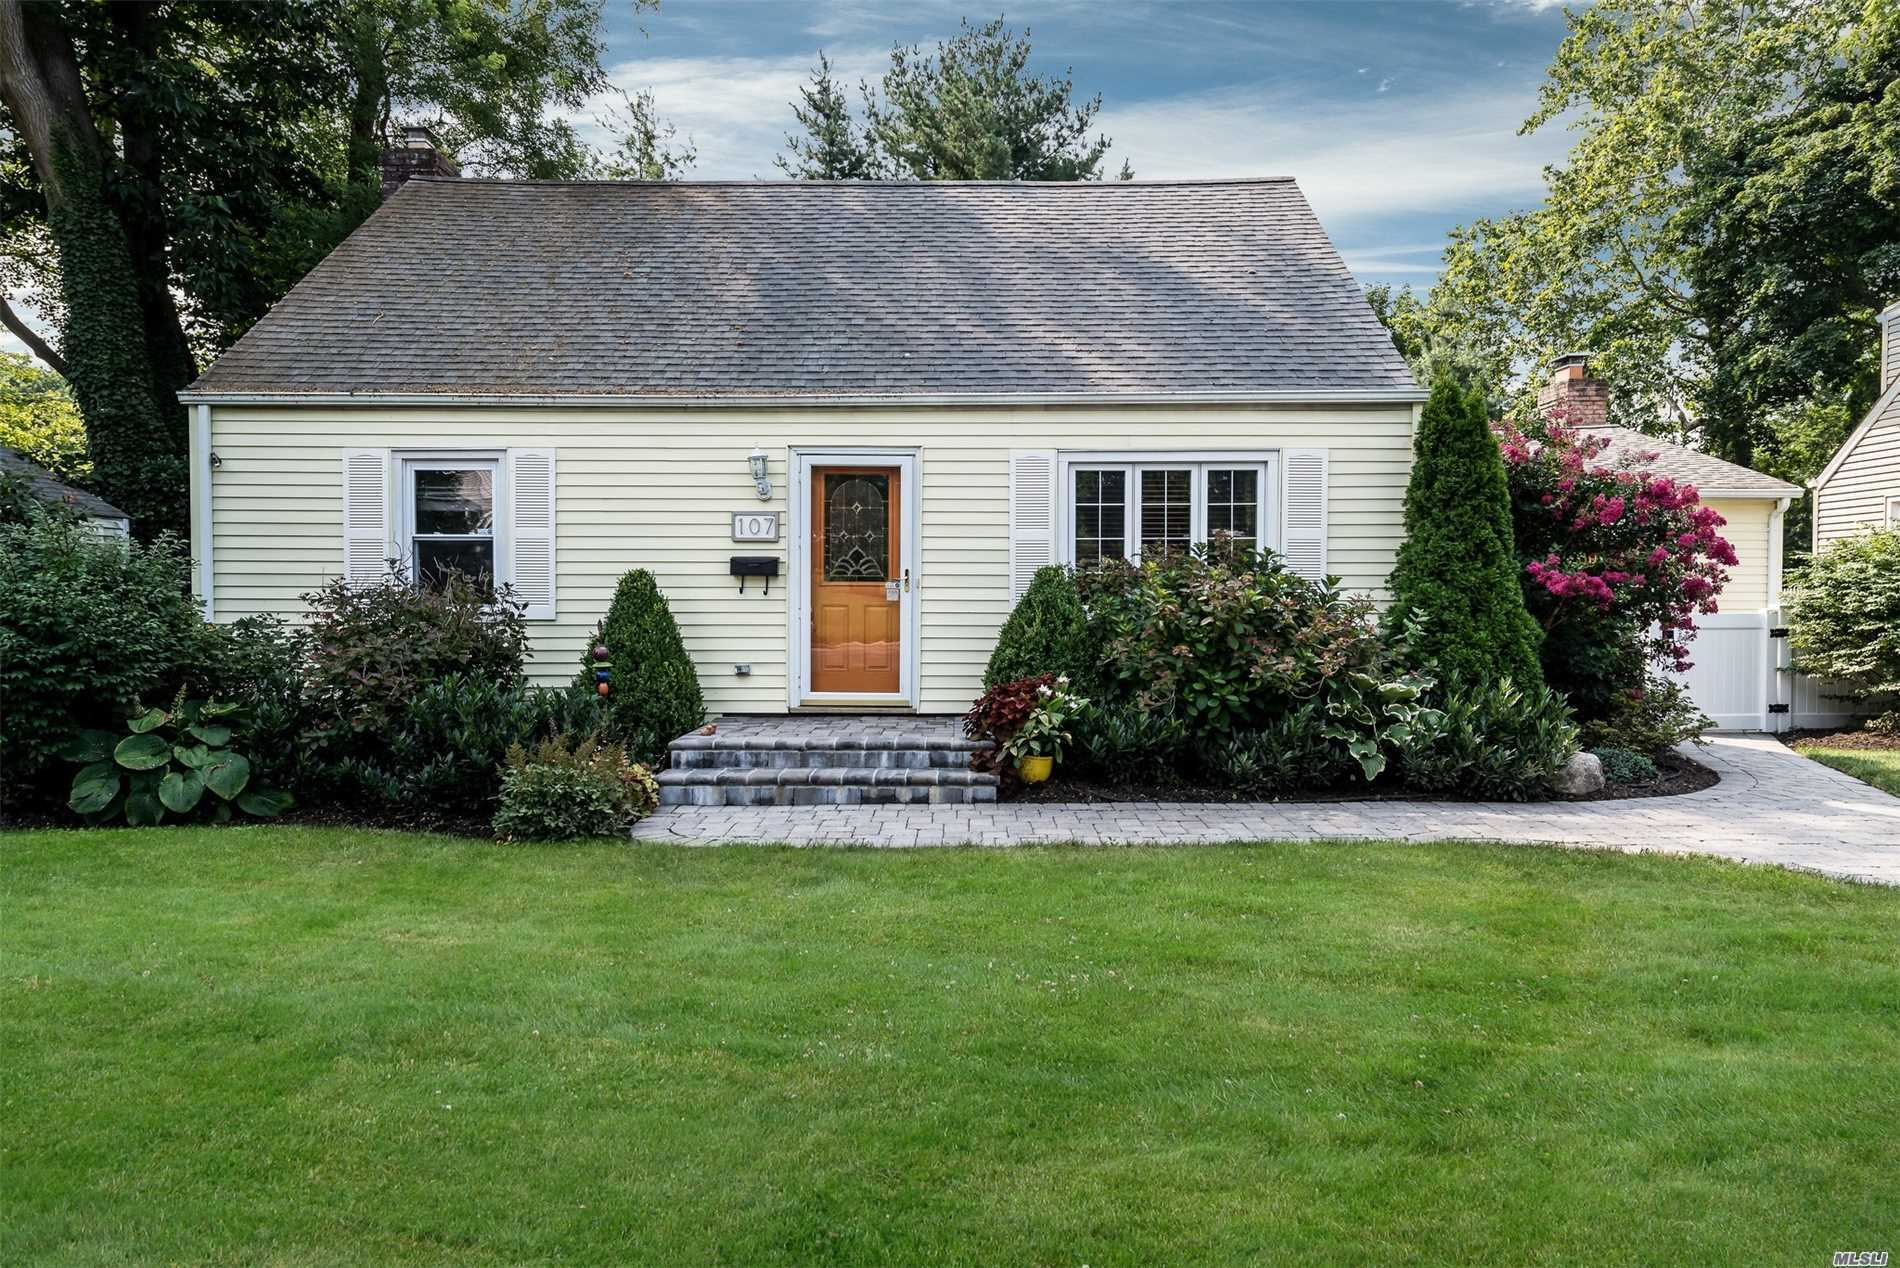 Photo of home for sale at 107 Valley Ave, Locust Valley NY